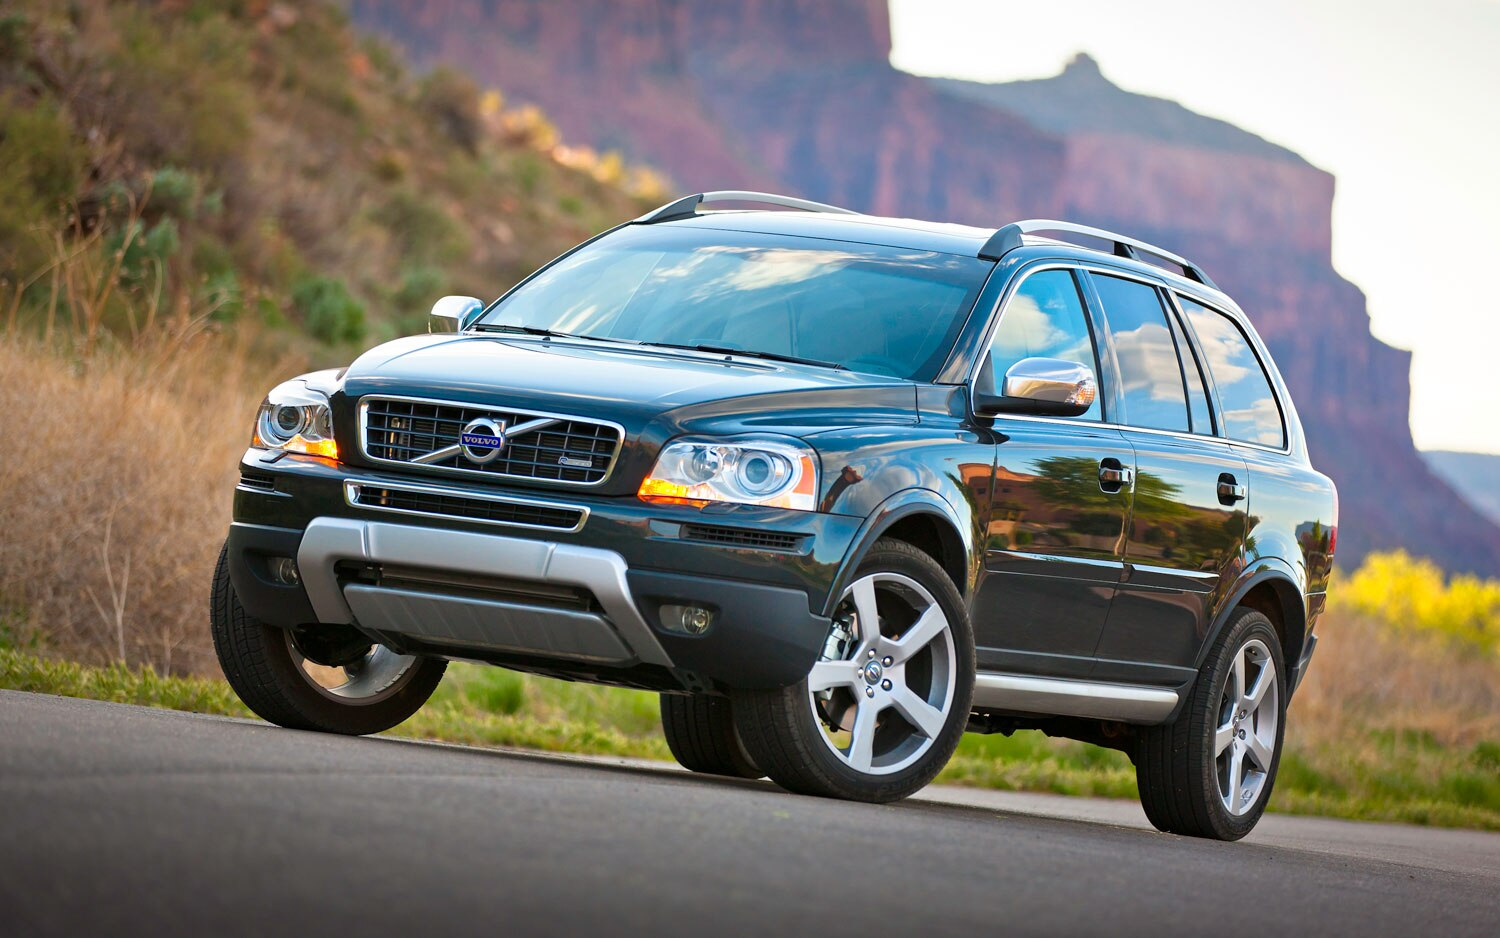 2012 Volvo XC90 Front Three Quarter View1